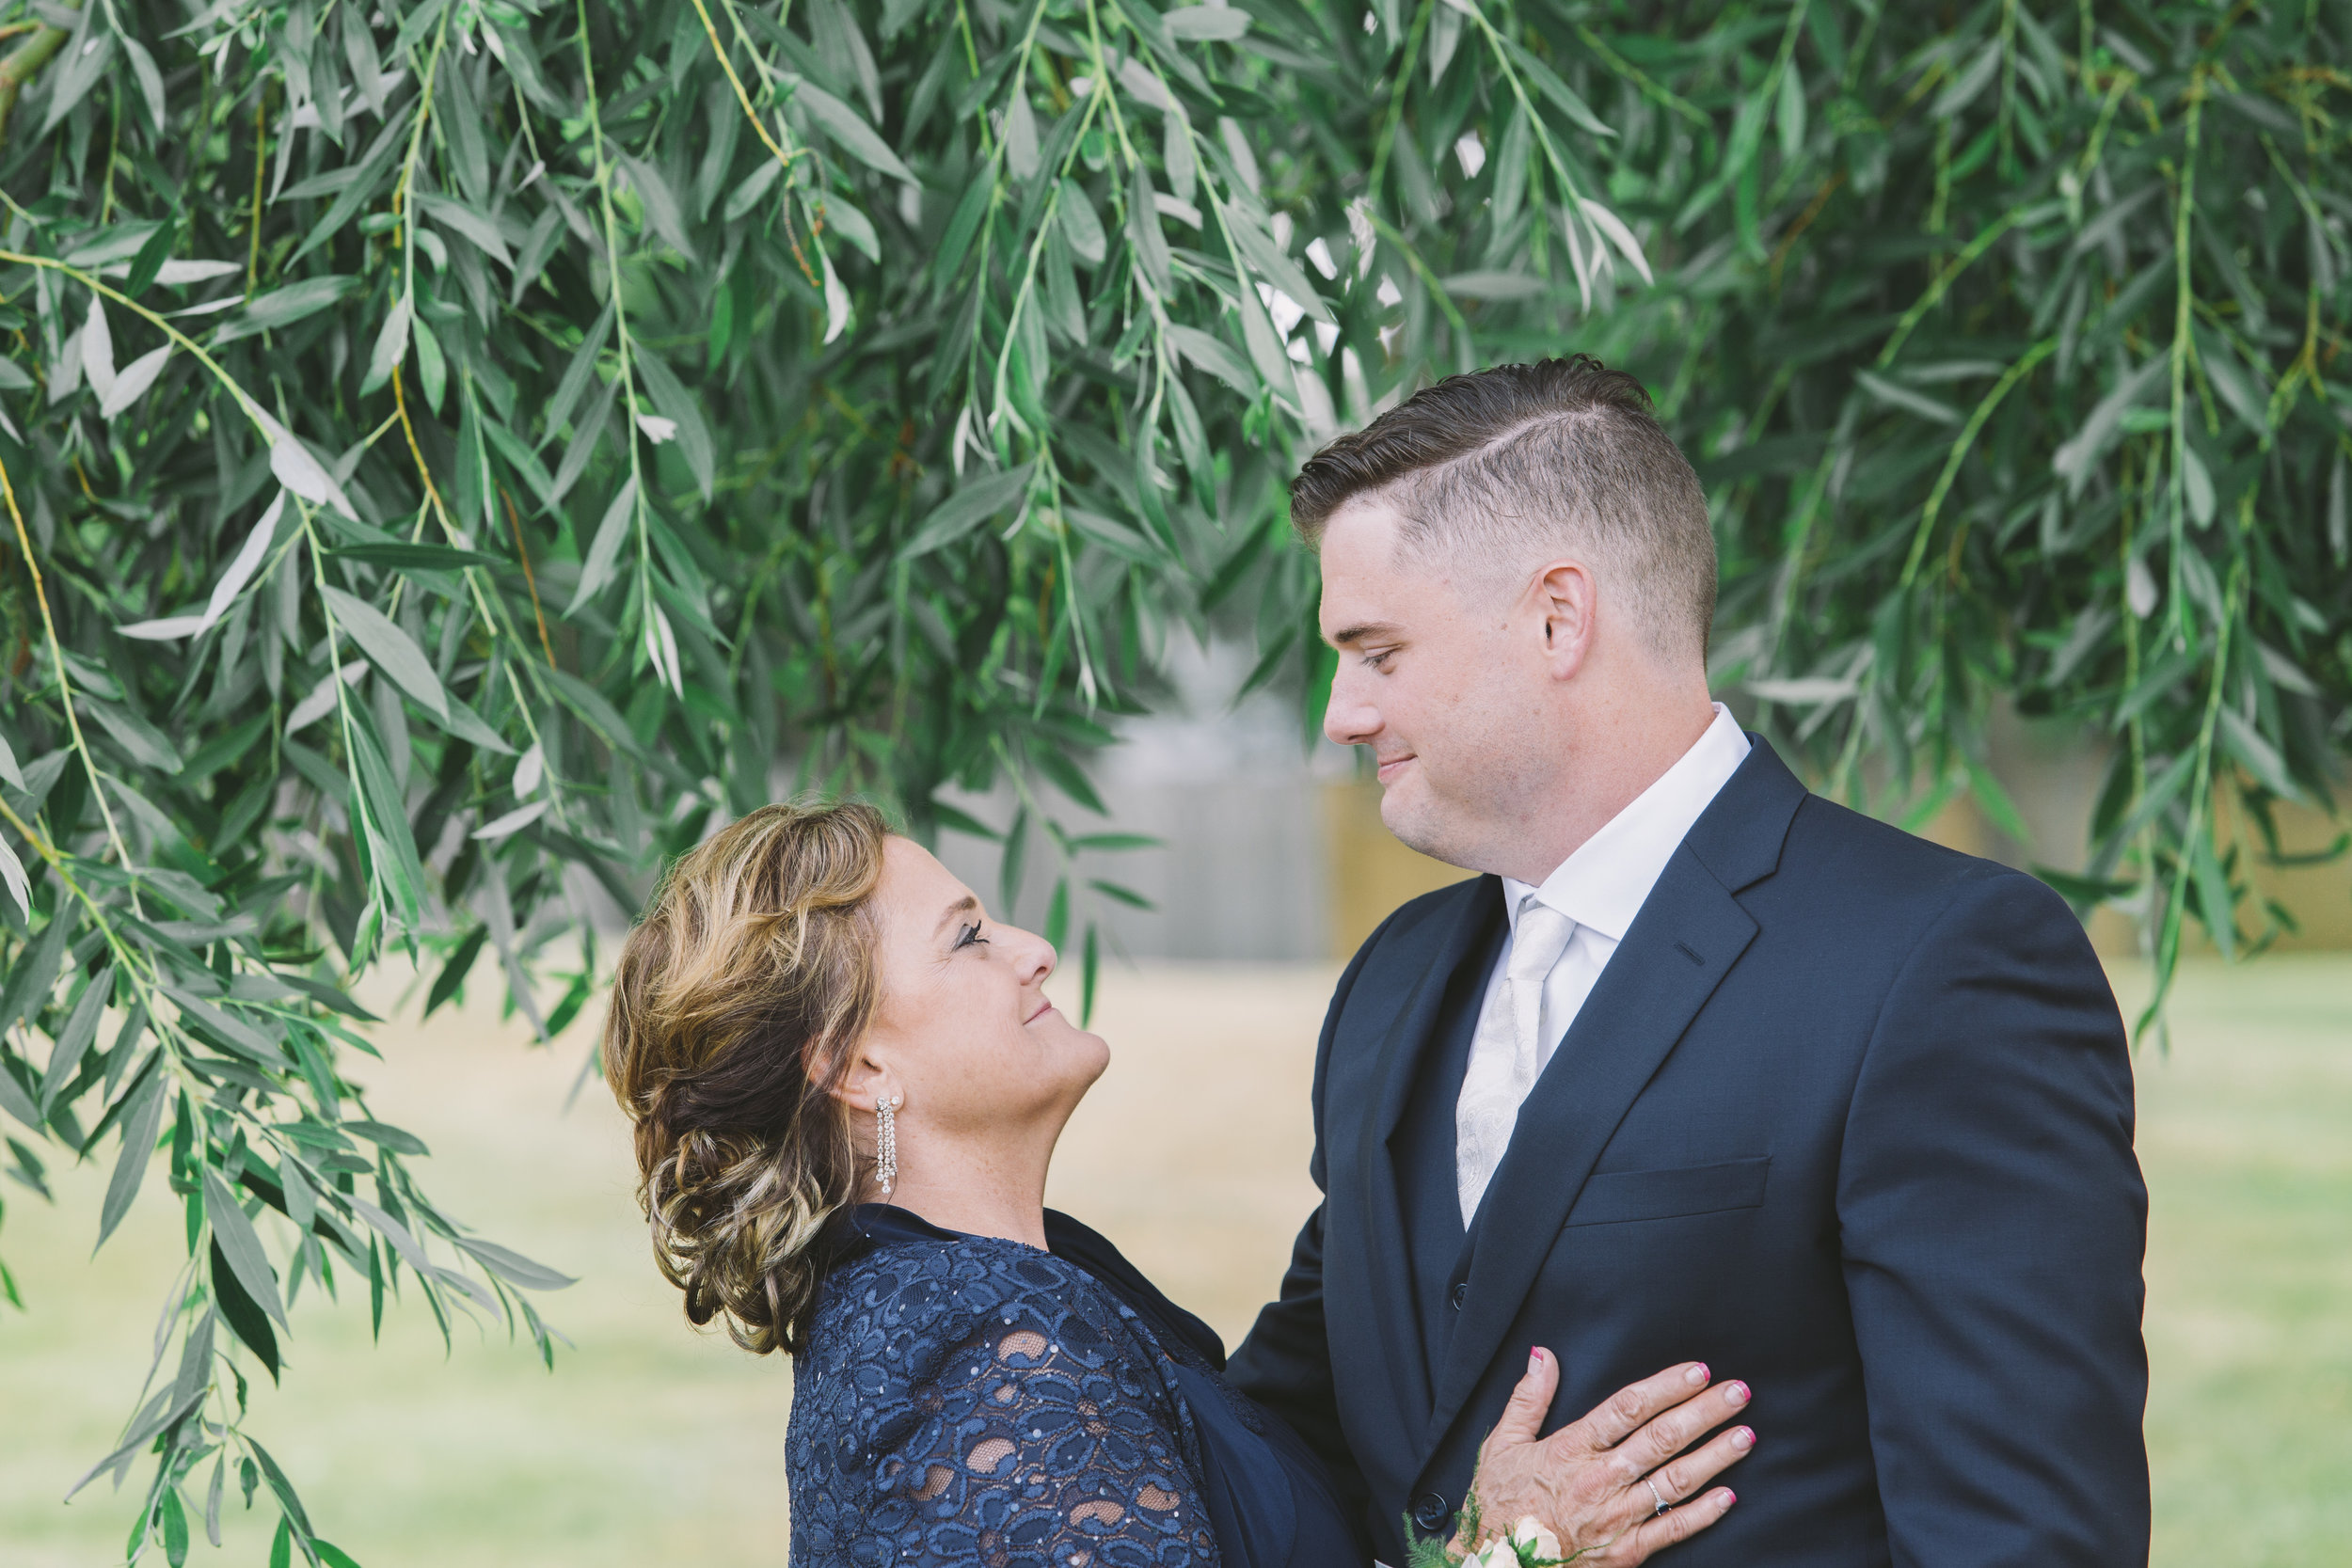 mother and son wedding photo